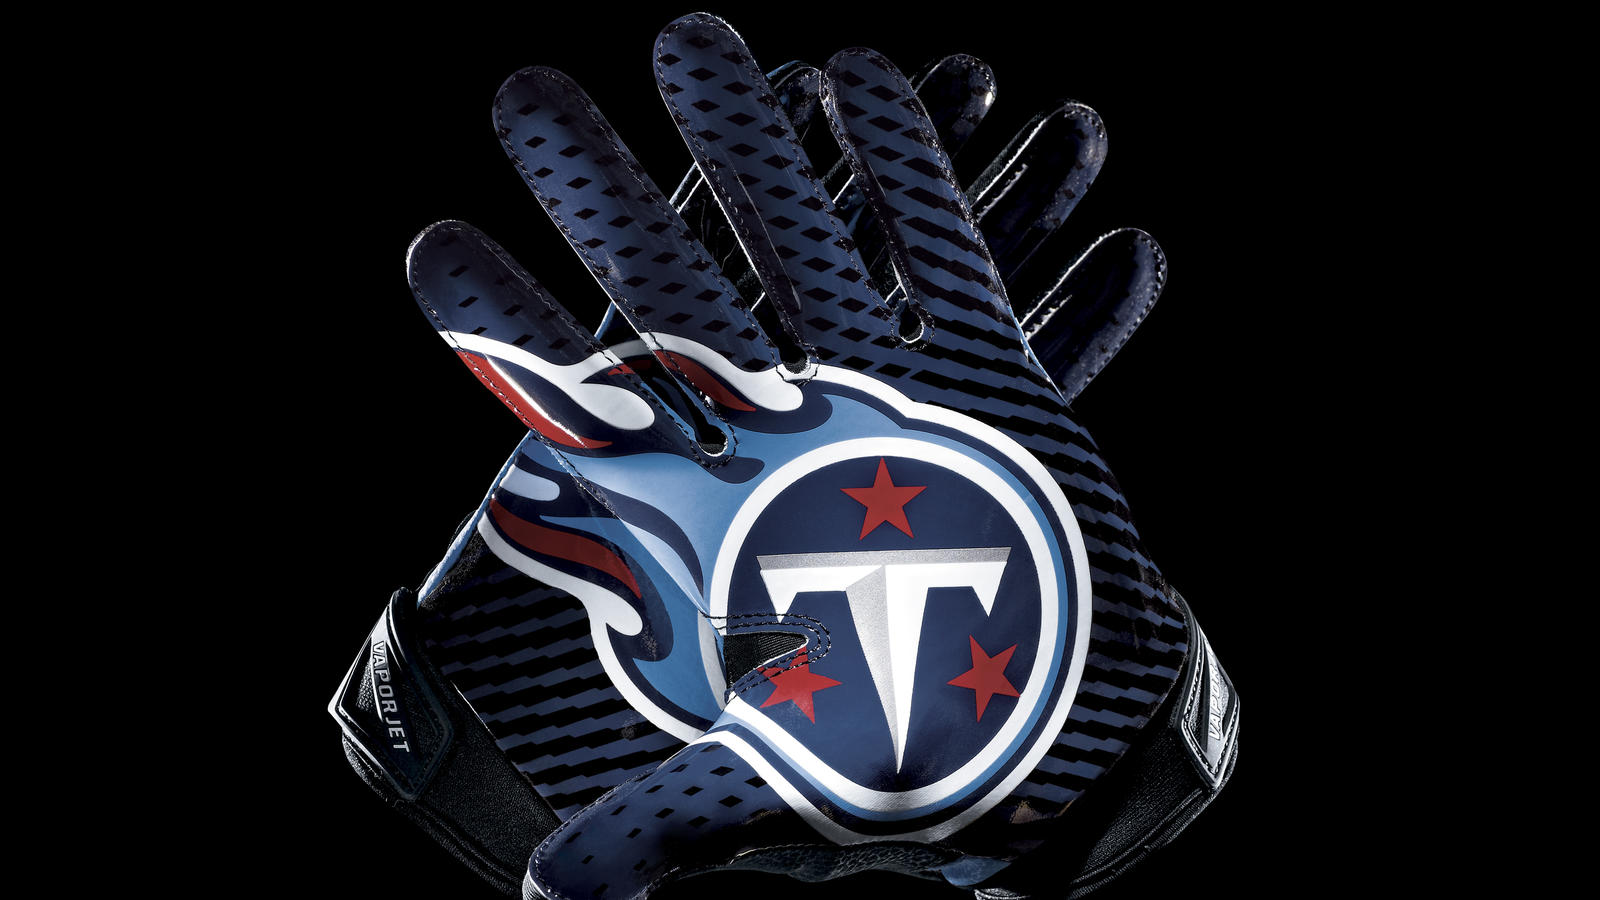 nfl titans logo www pixshark com images galleries with football helmet clip art svg football helmet clip art svg